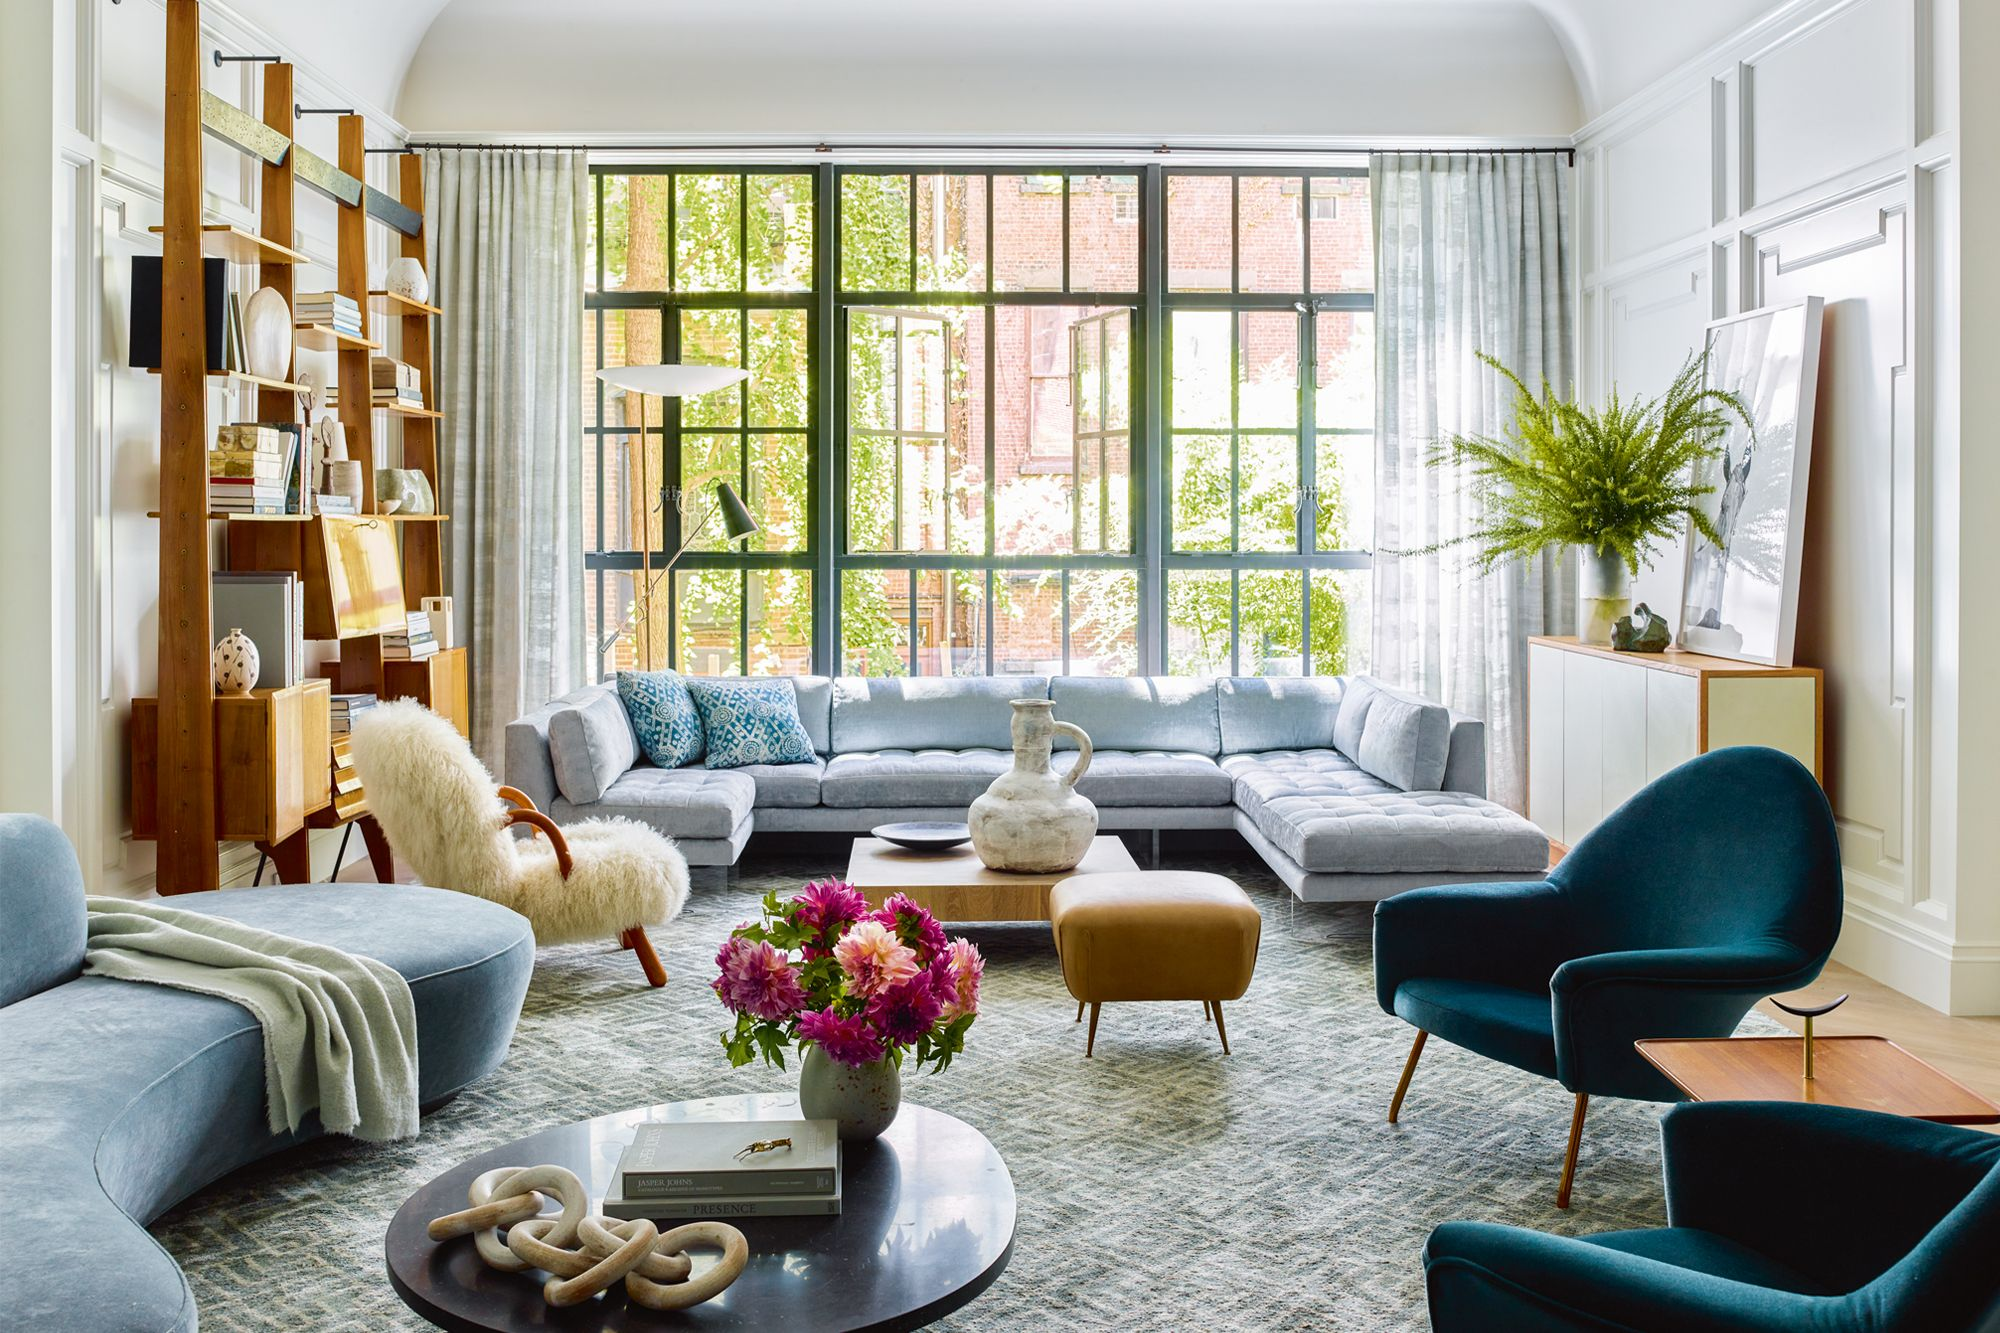 Home Tour: A Townhouse In New York With A Stylish Mix Of Vintage And Contemporary Pieces